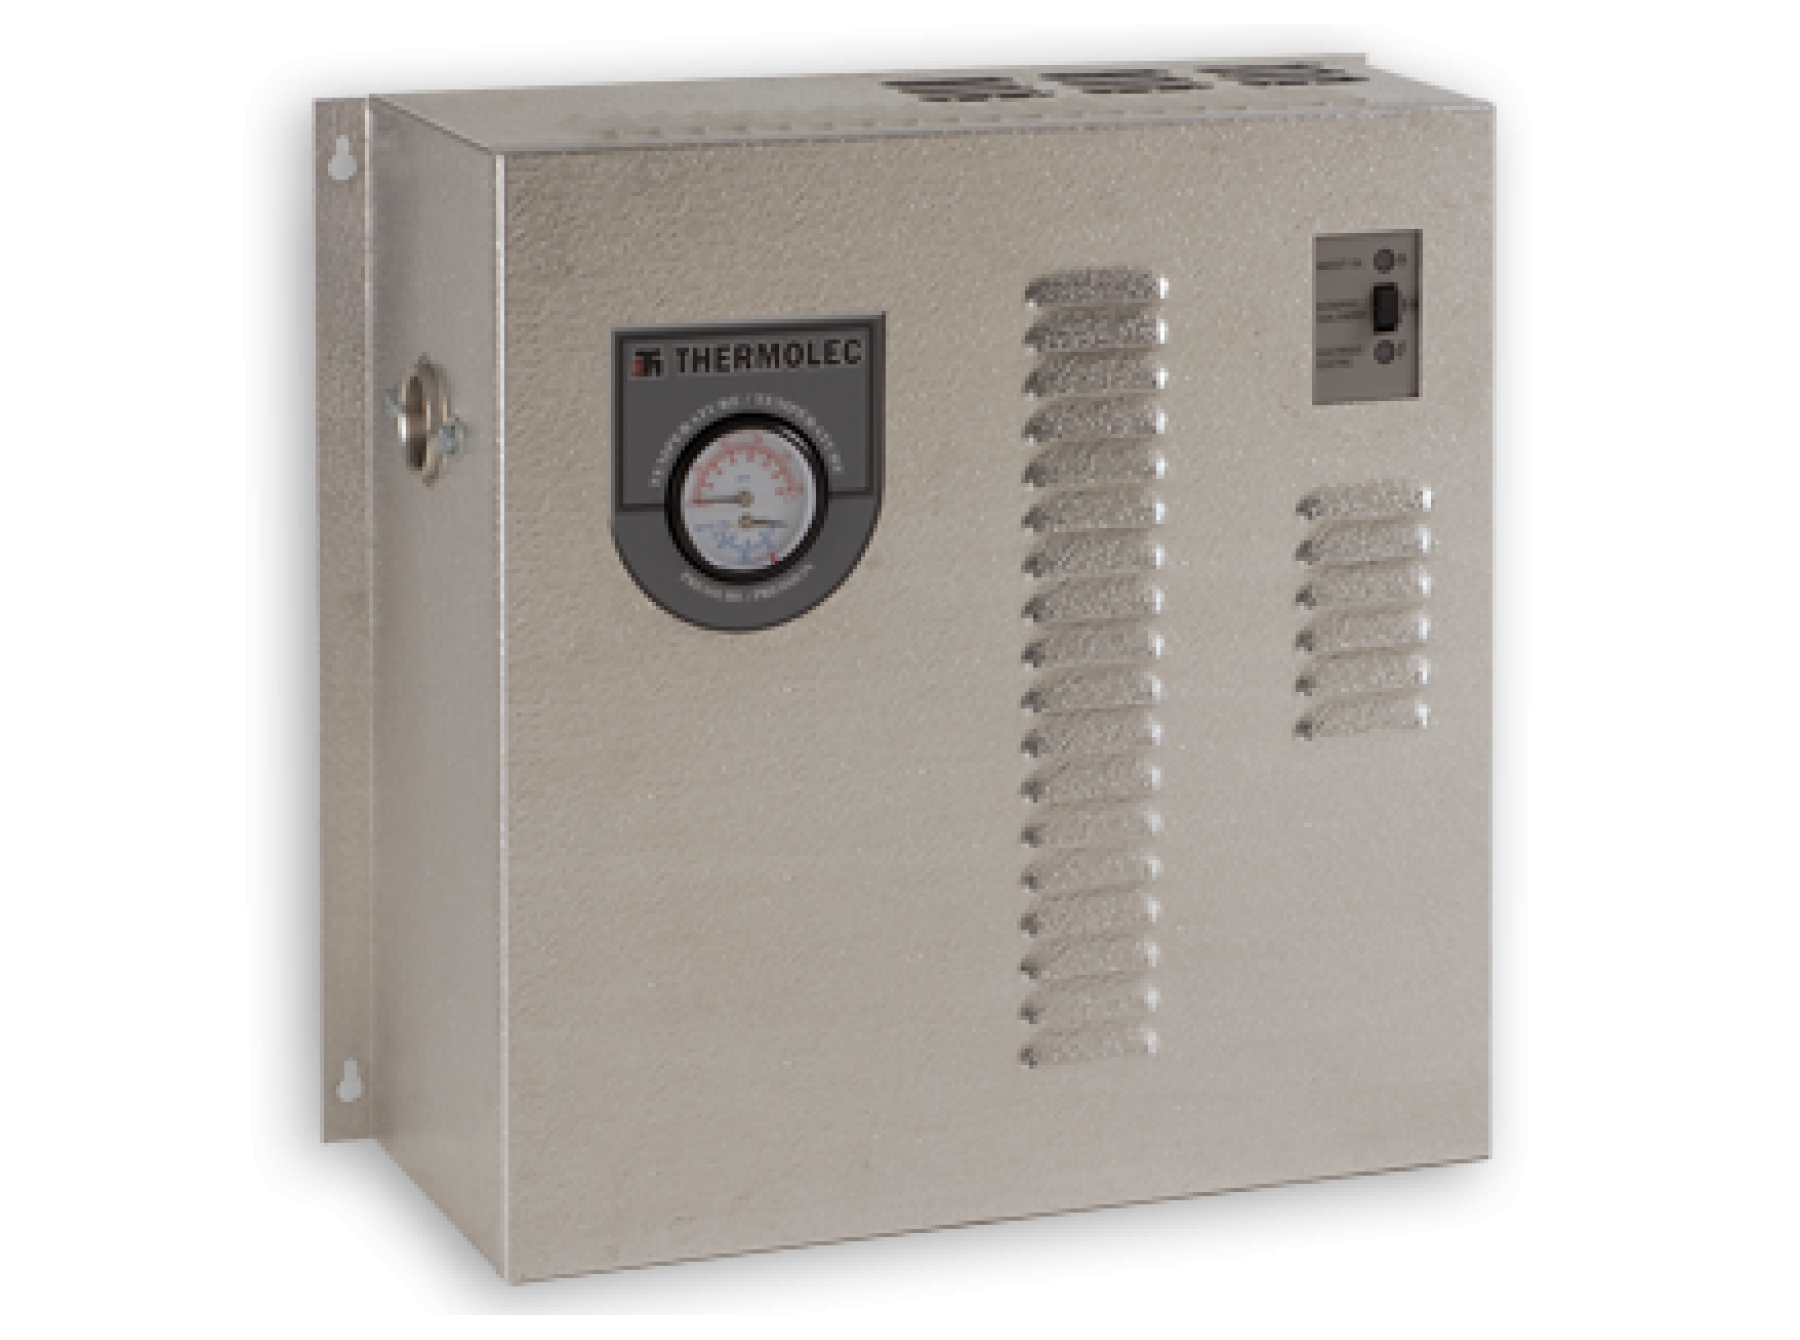 thermolec electric boiler wiring diagram electrical panel hazards available in canada ward heating